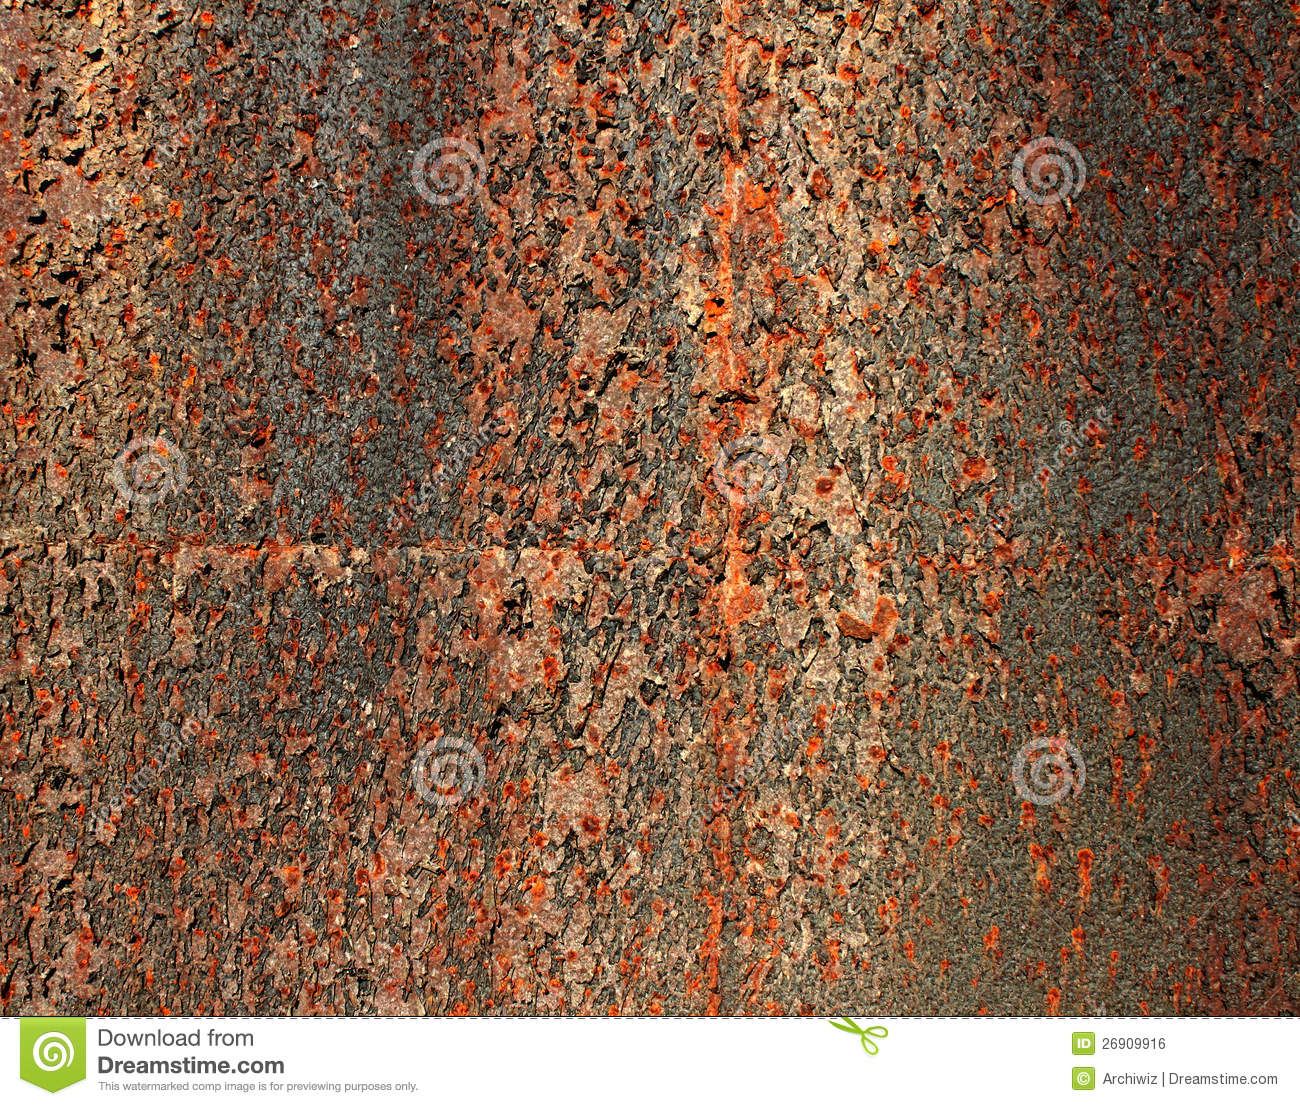 Rusty Corten Steel Background Royalty Free Stock Image - Image: 26909916